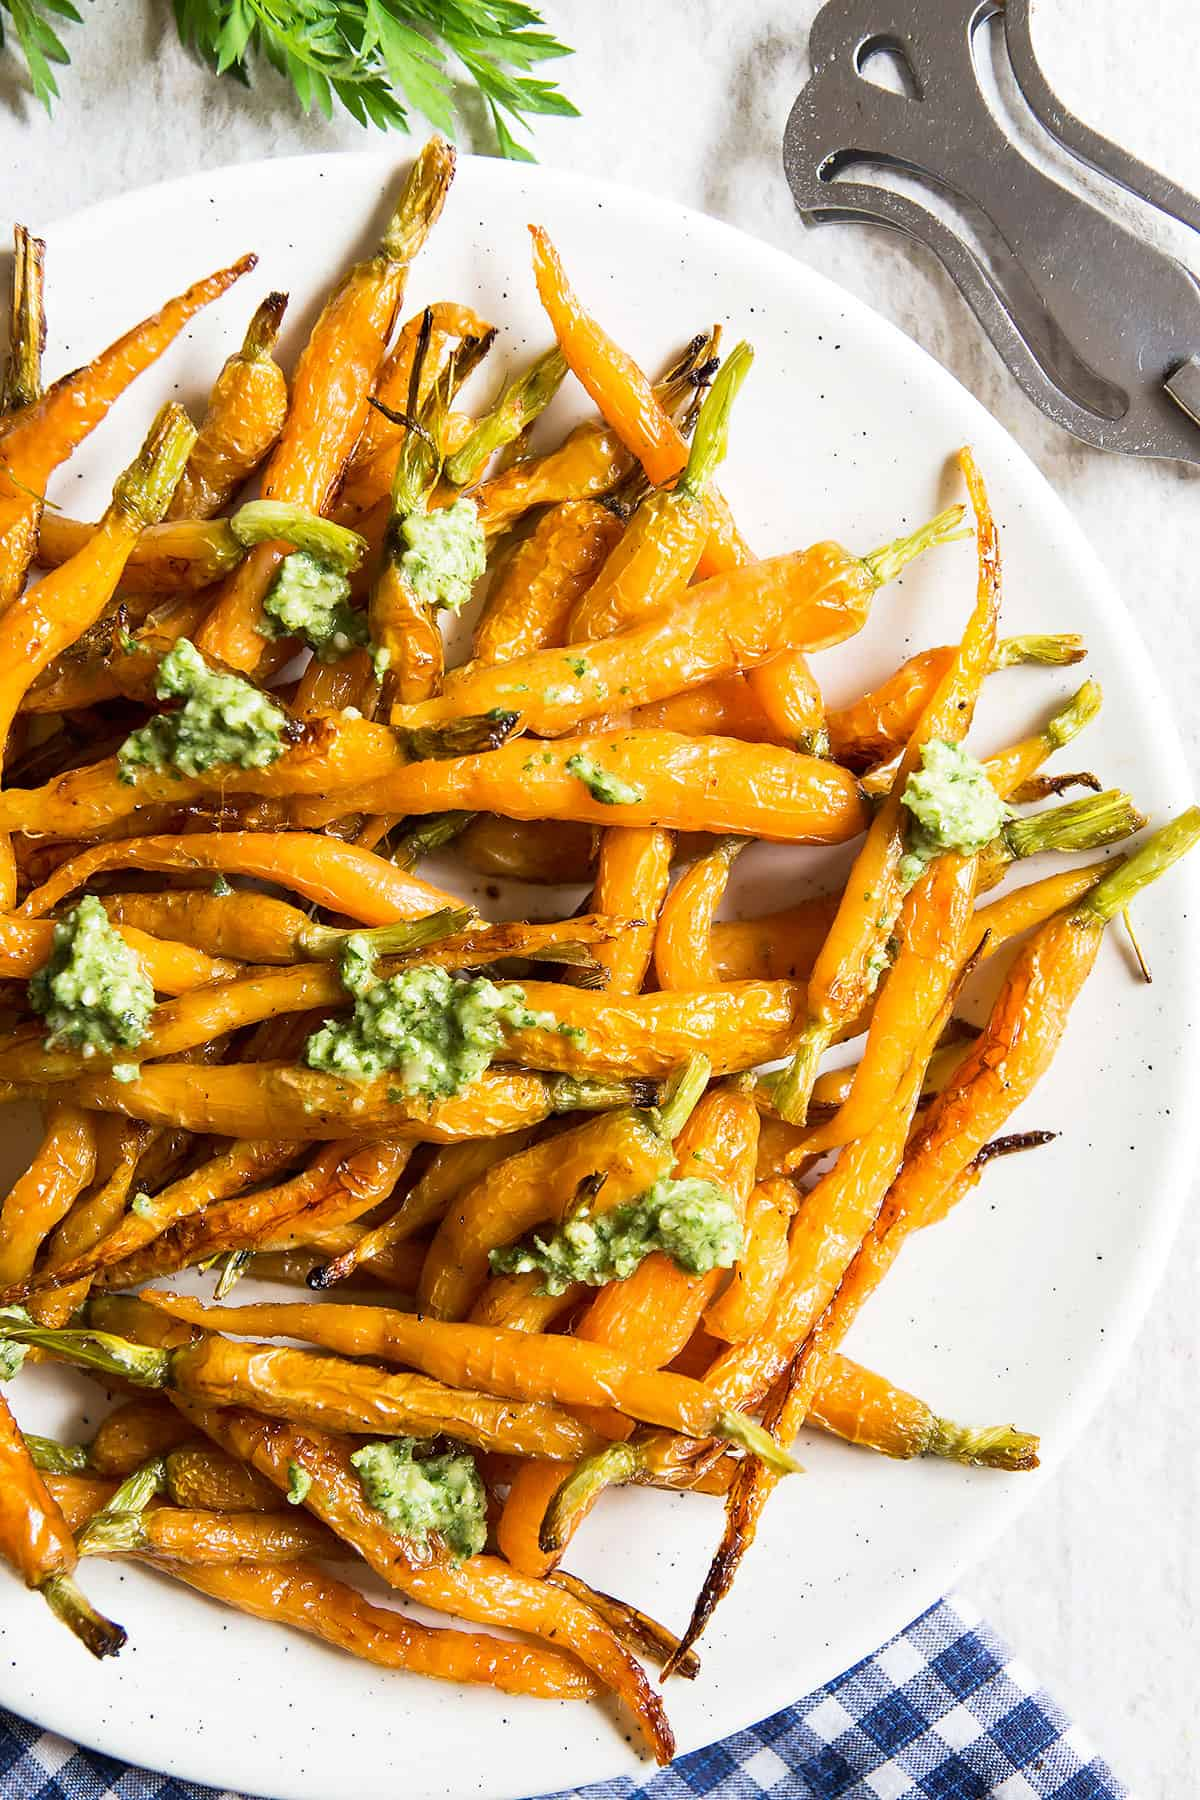 ... fittingly for a glazed carrots recipe – used this carrot top pesto